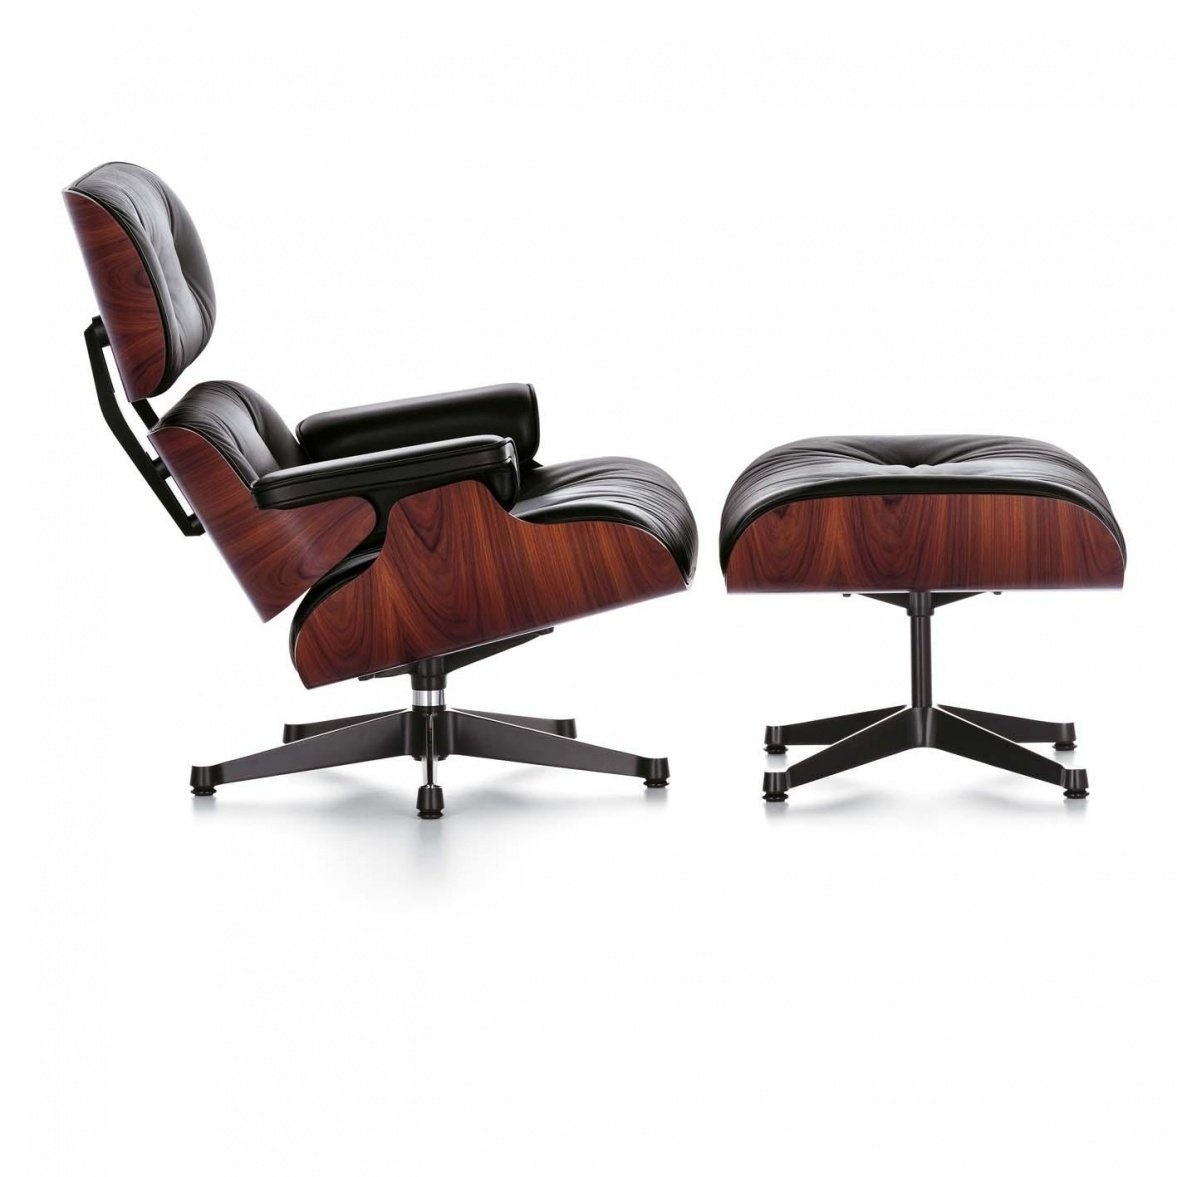 Lounge Sessel Leder Cognac Lounge Sessel Leder. Good Rust Aus With Lounge Sessel